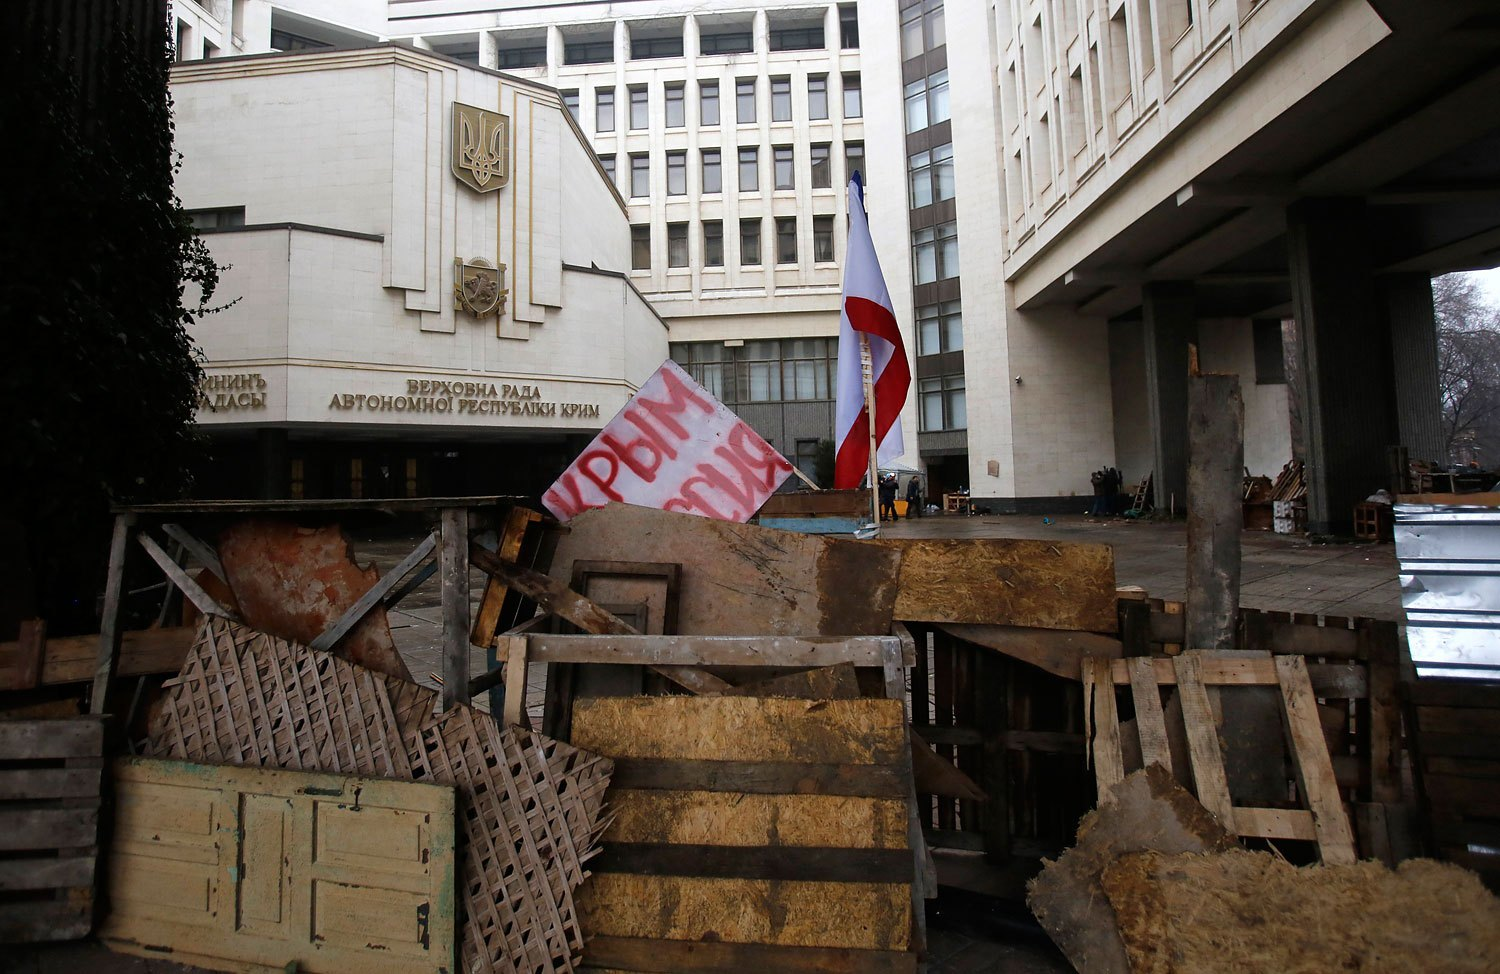 Barricades block the entrance to government buildings in Simferopol, Crimea, with a banner that reads  Crimea Russia,  Feb. 27, 2014.